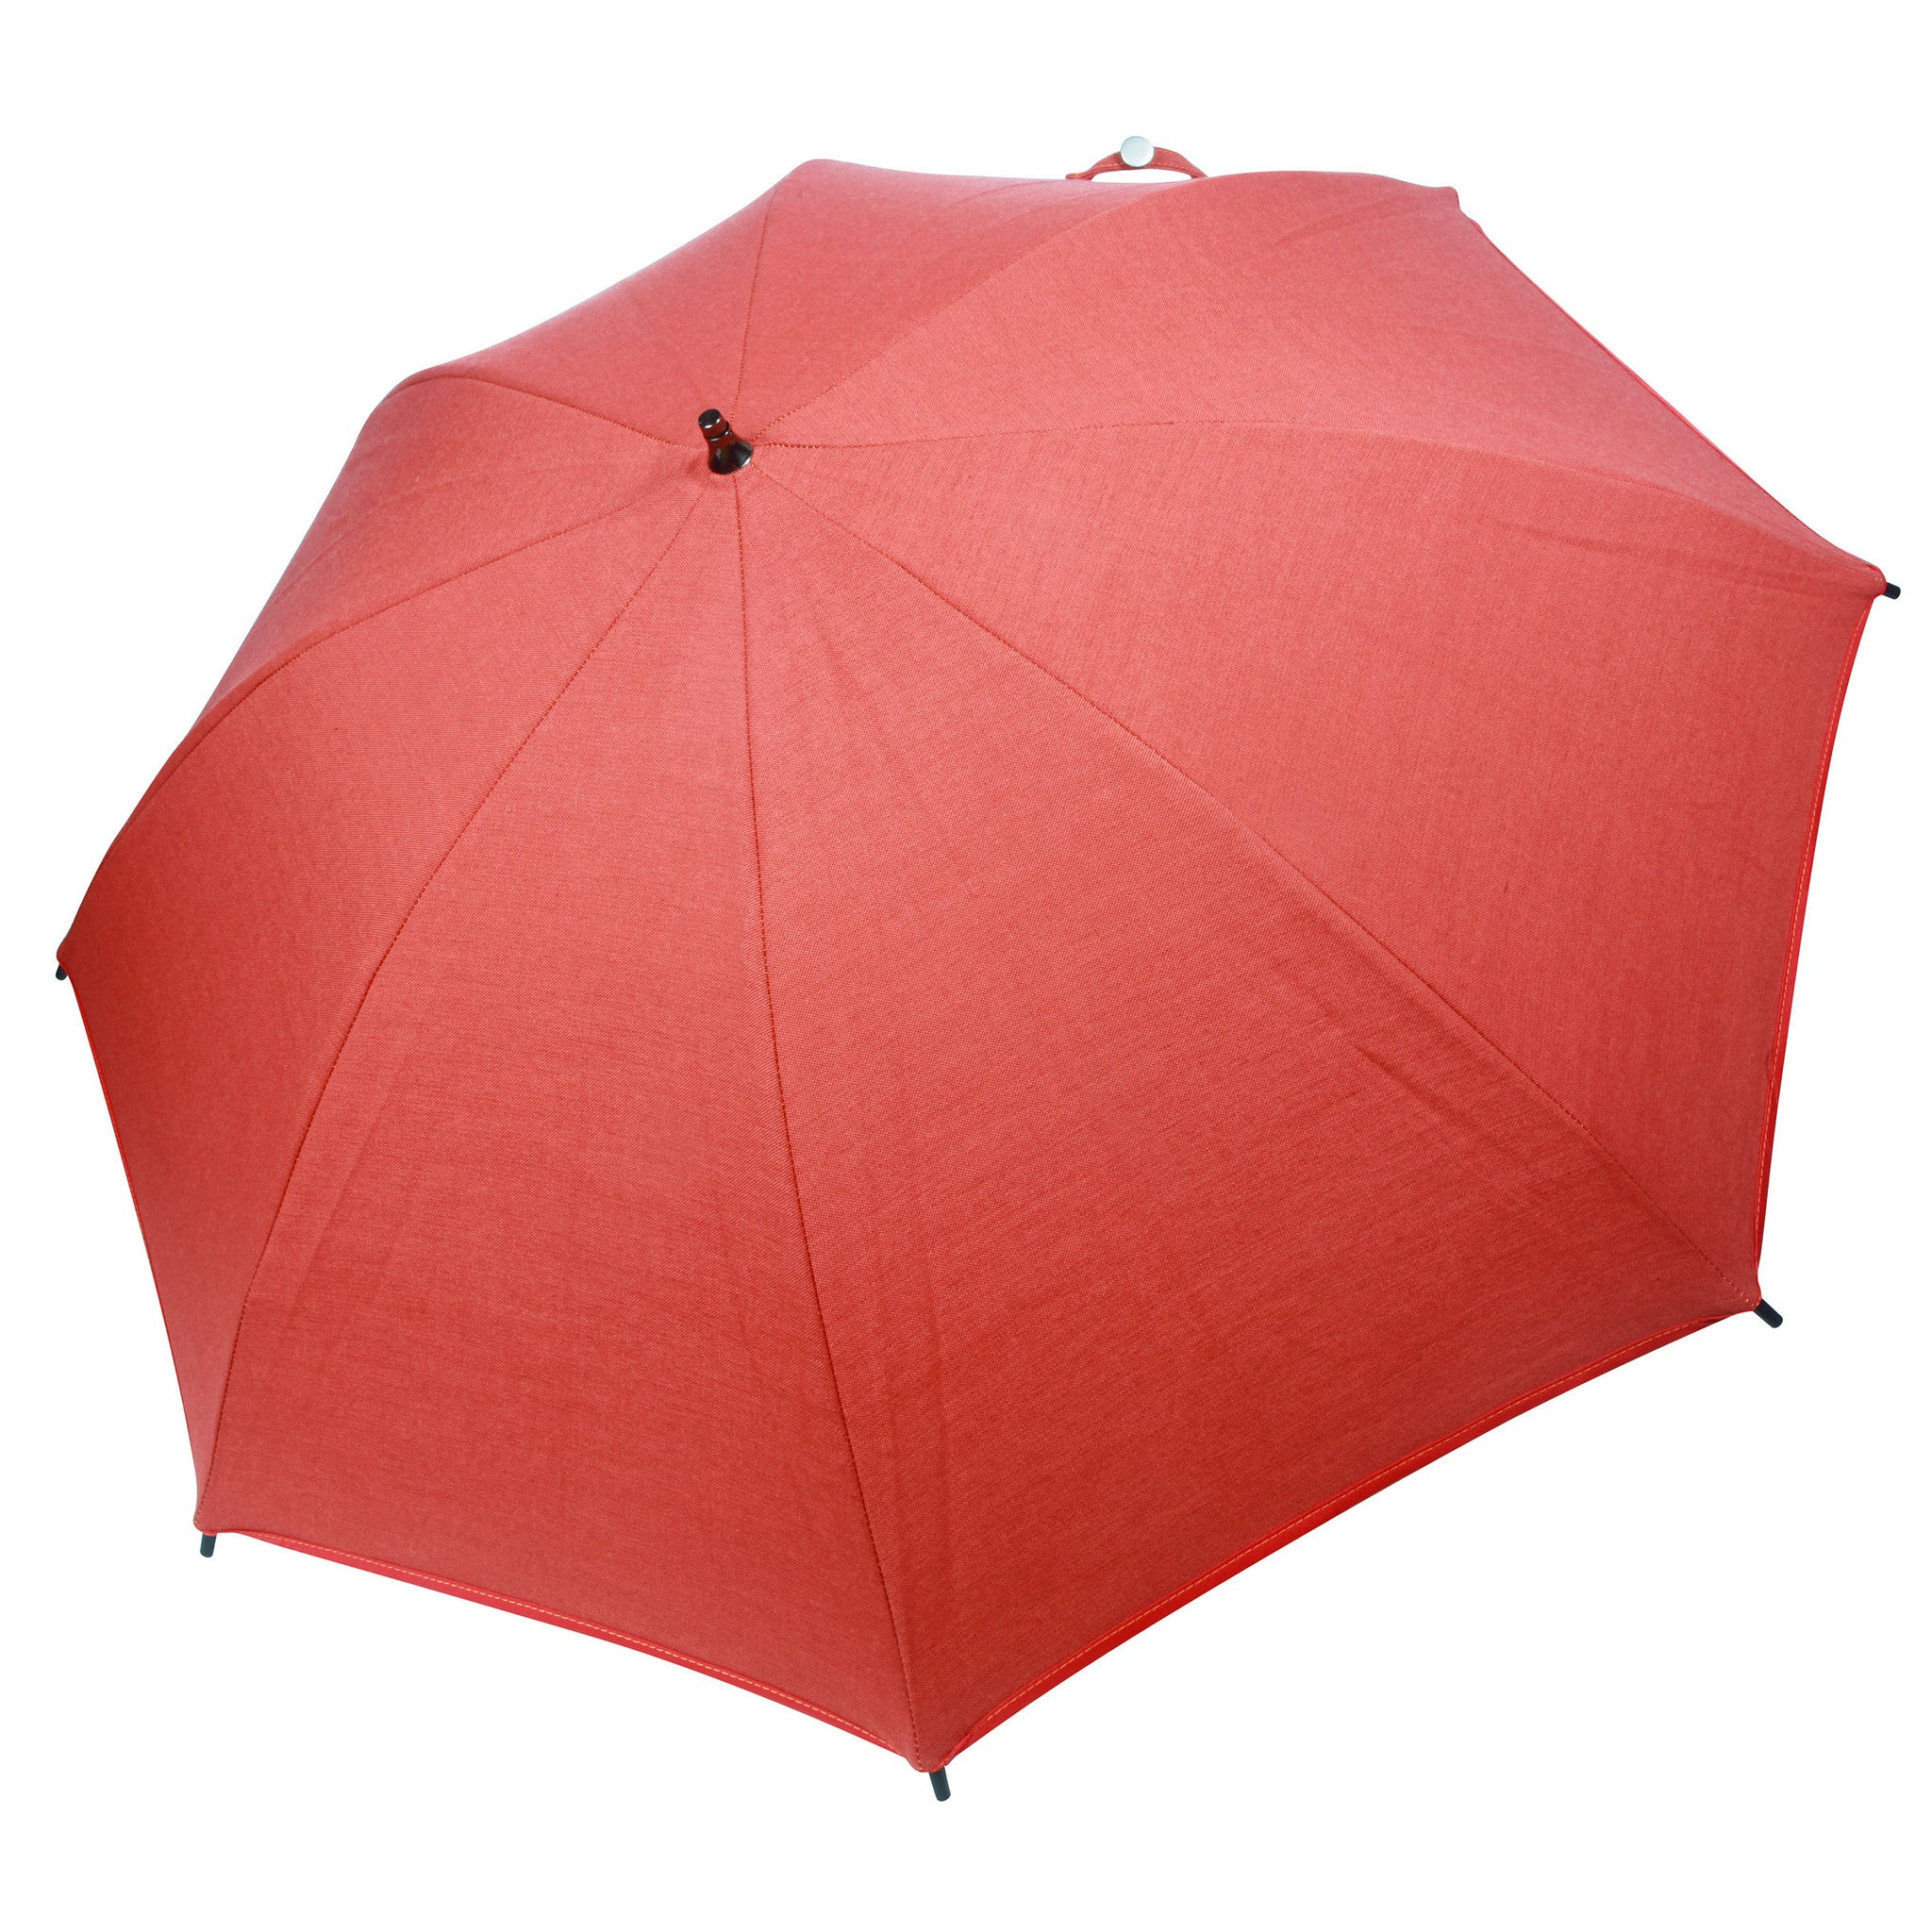 Sun Protection Umbrella™ Personal (Sunset Orange) featuring Sunbrella™ fabric